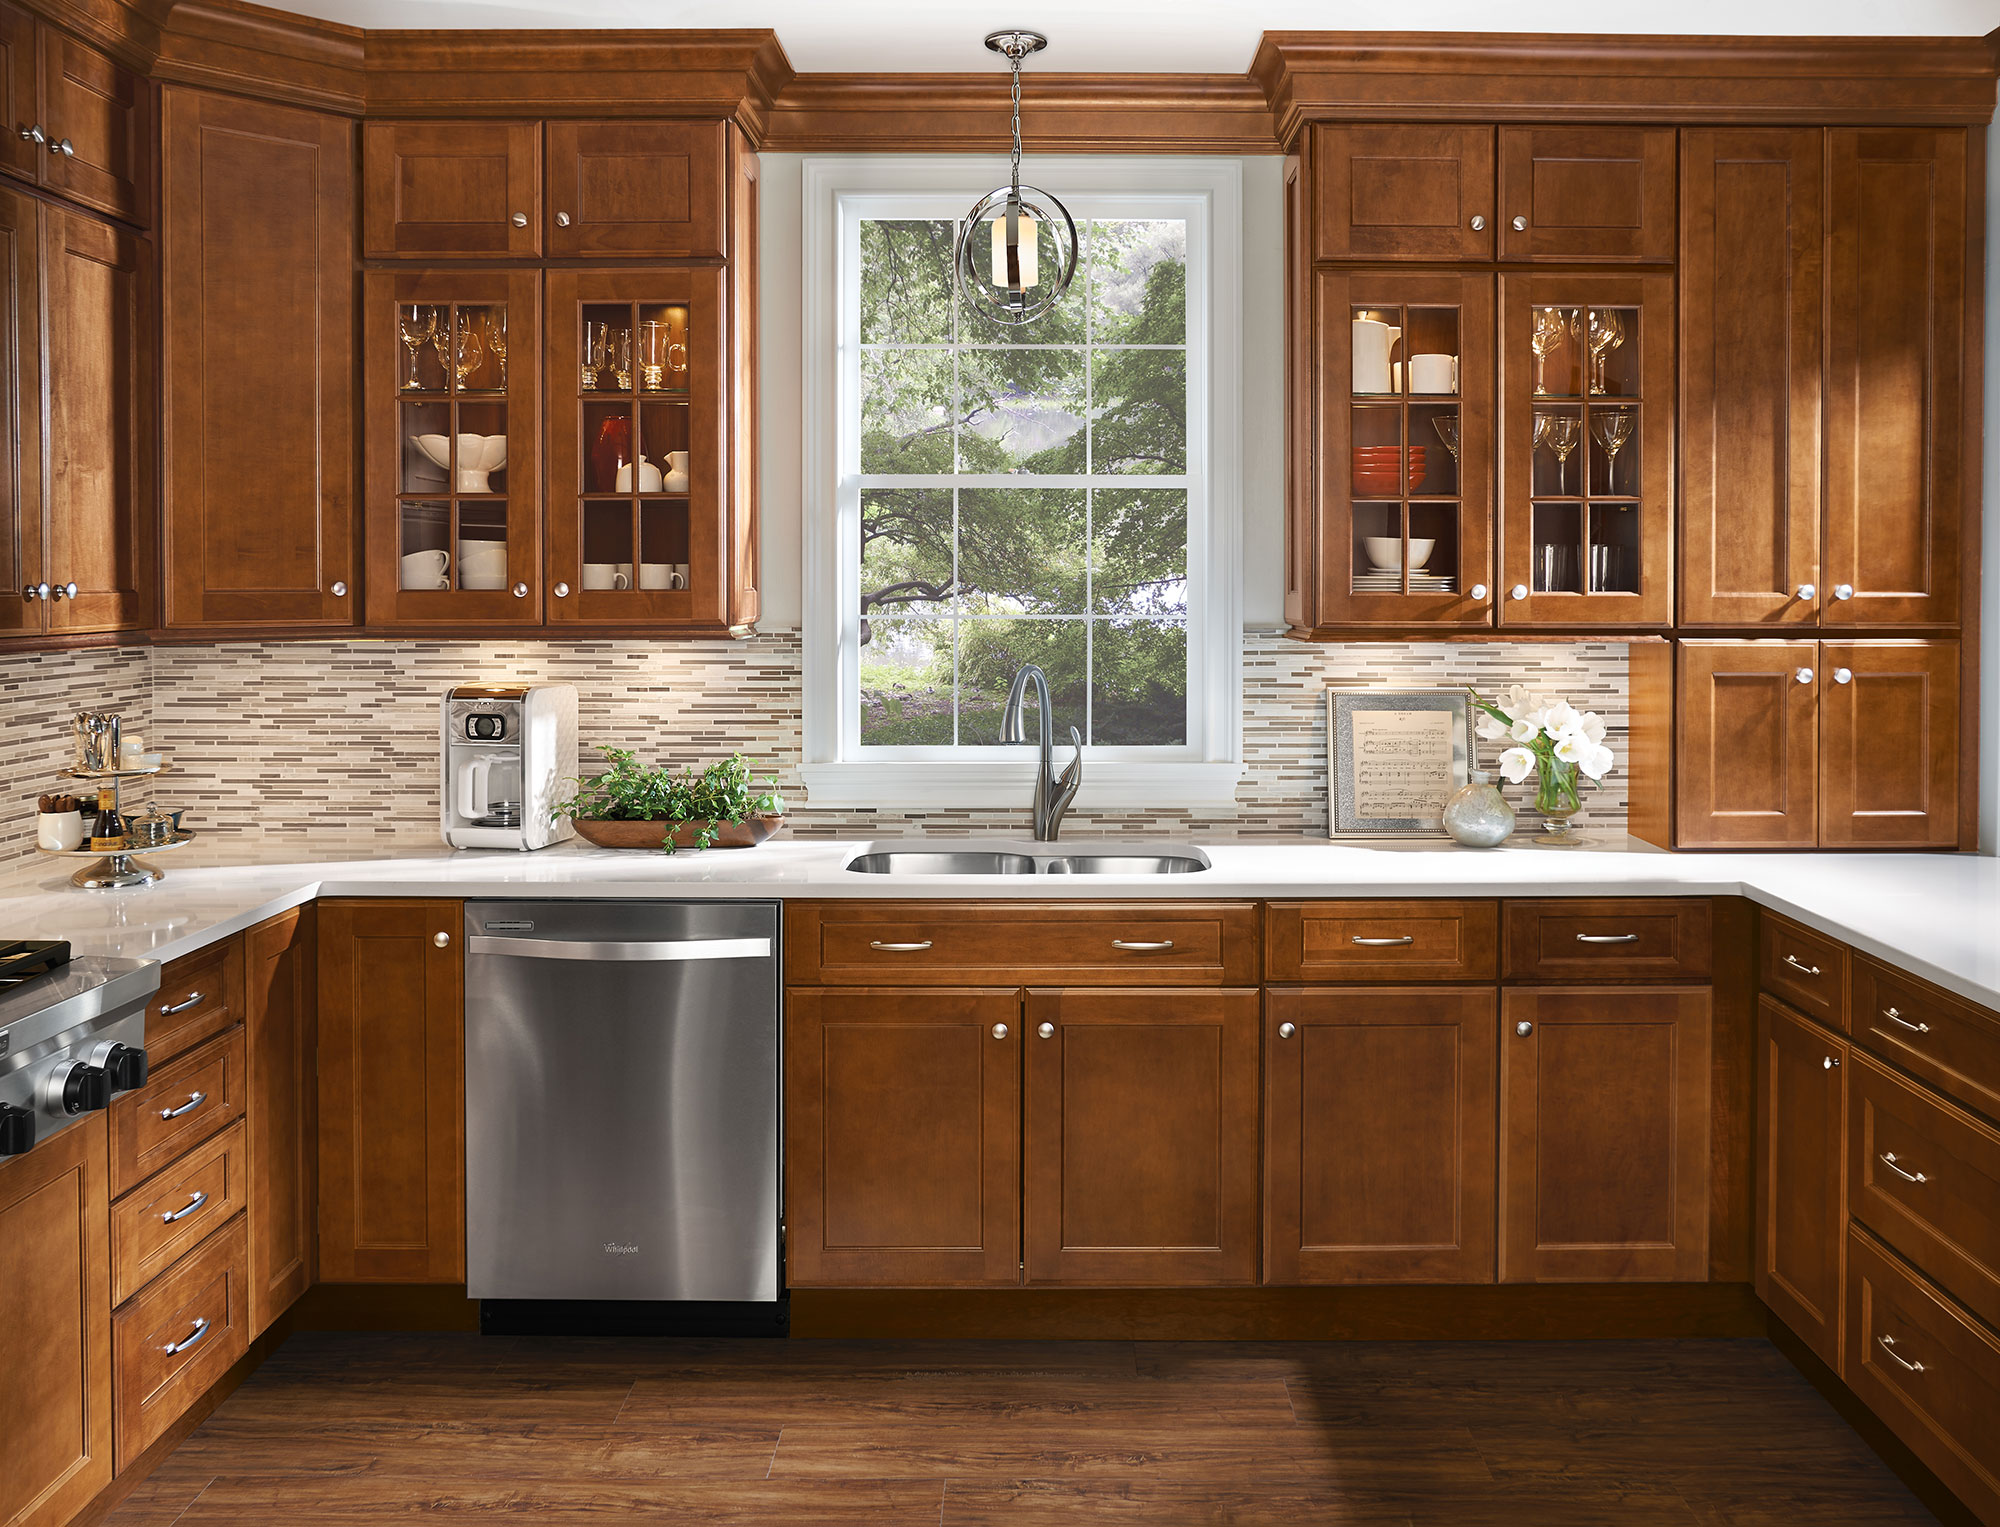 Kraftmaid Kitchen Cabinets Kitchen Cabinet Kings Cabinet